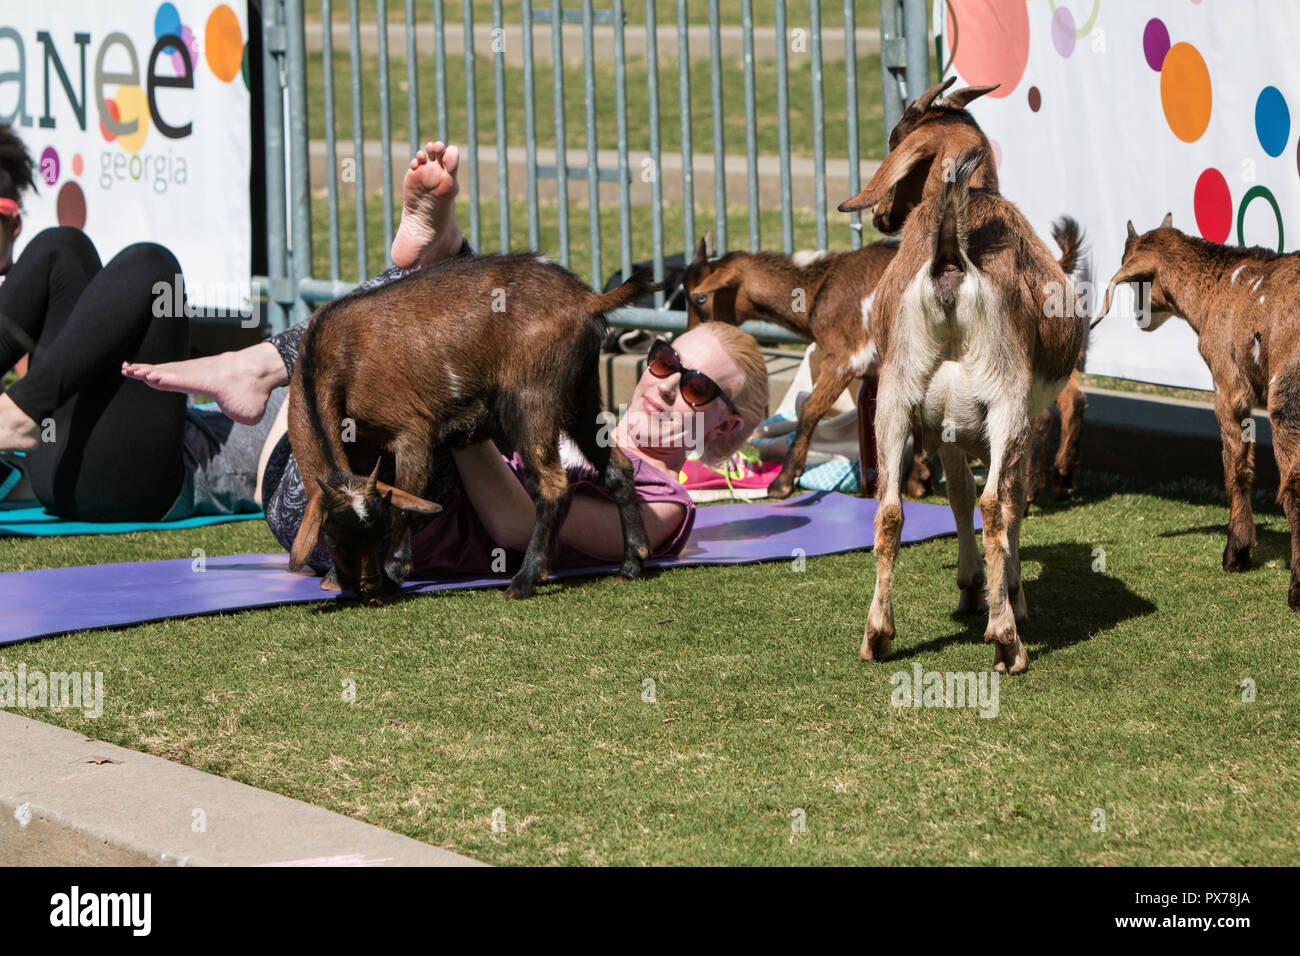 Suwanee, GA, USA - April 29, 2018:  Goats gather around a woman stretching in a free goat yoga class at Suwanee Towne Park on April 29, 2018. Stock Photo